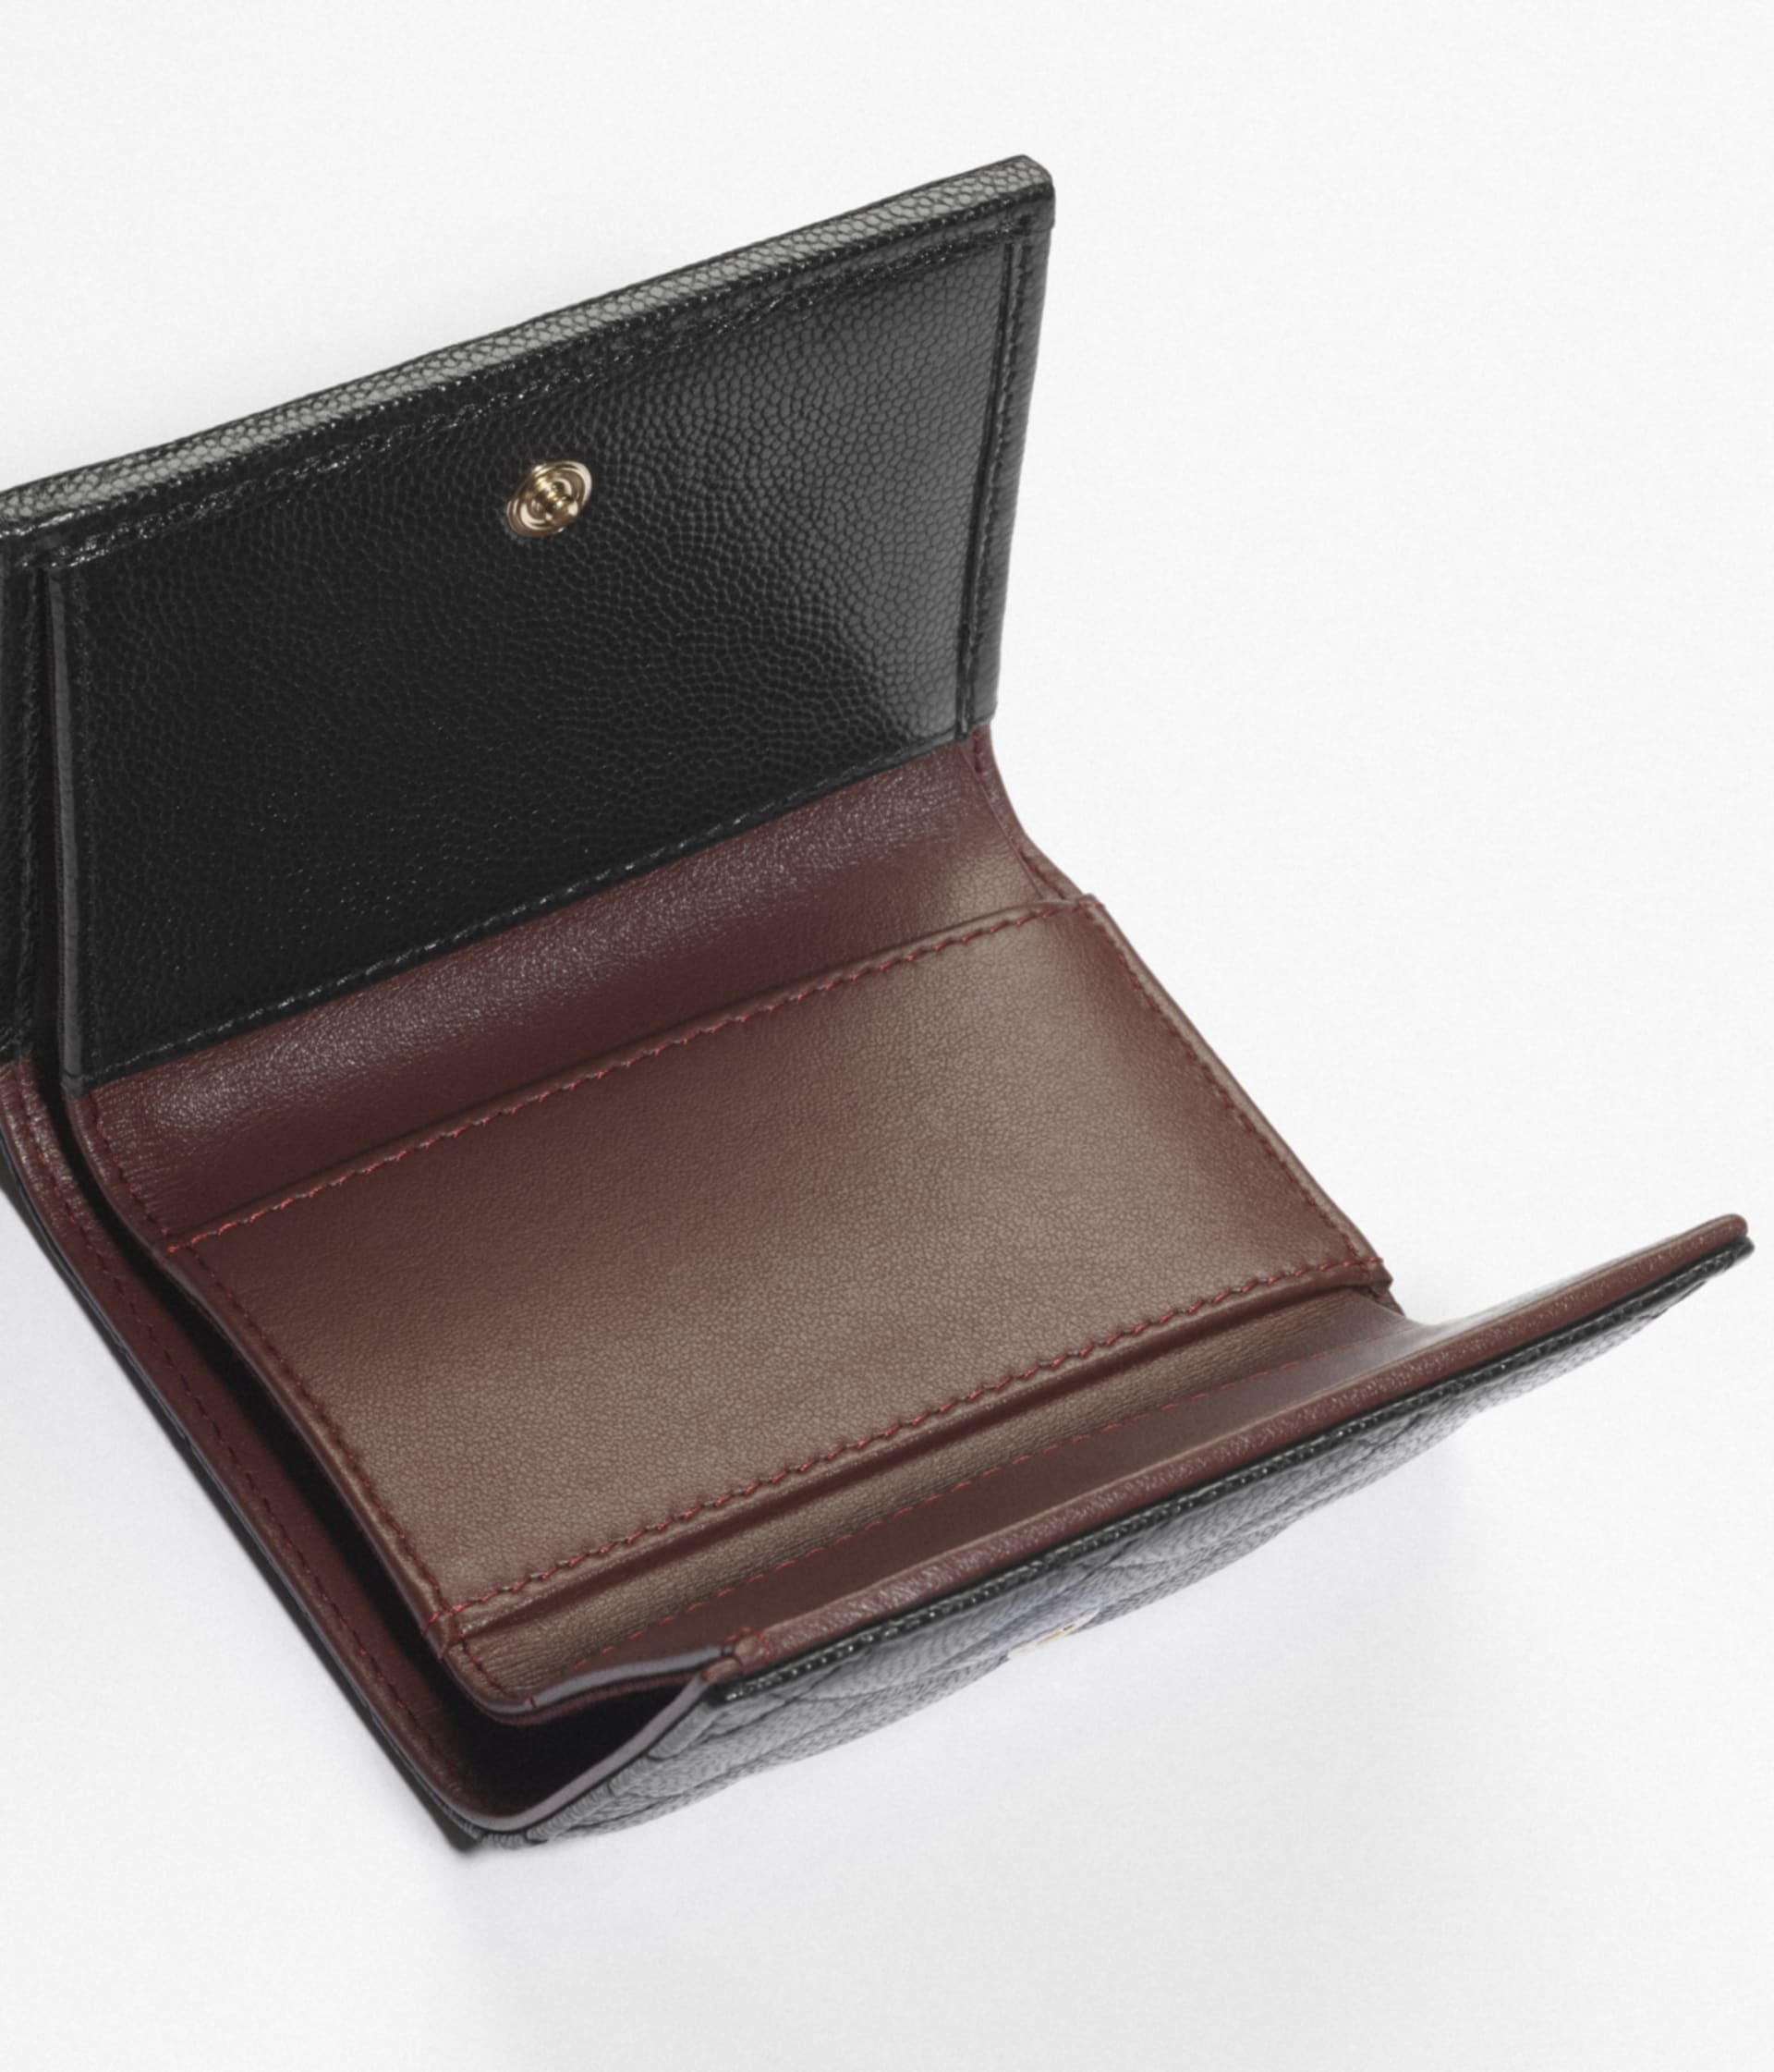 image 4 - Classic Small Flap Wallet - Grained Calfskin & Gold-Tone Metal - Black